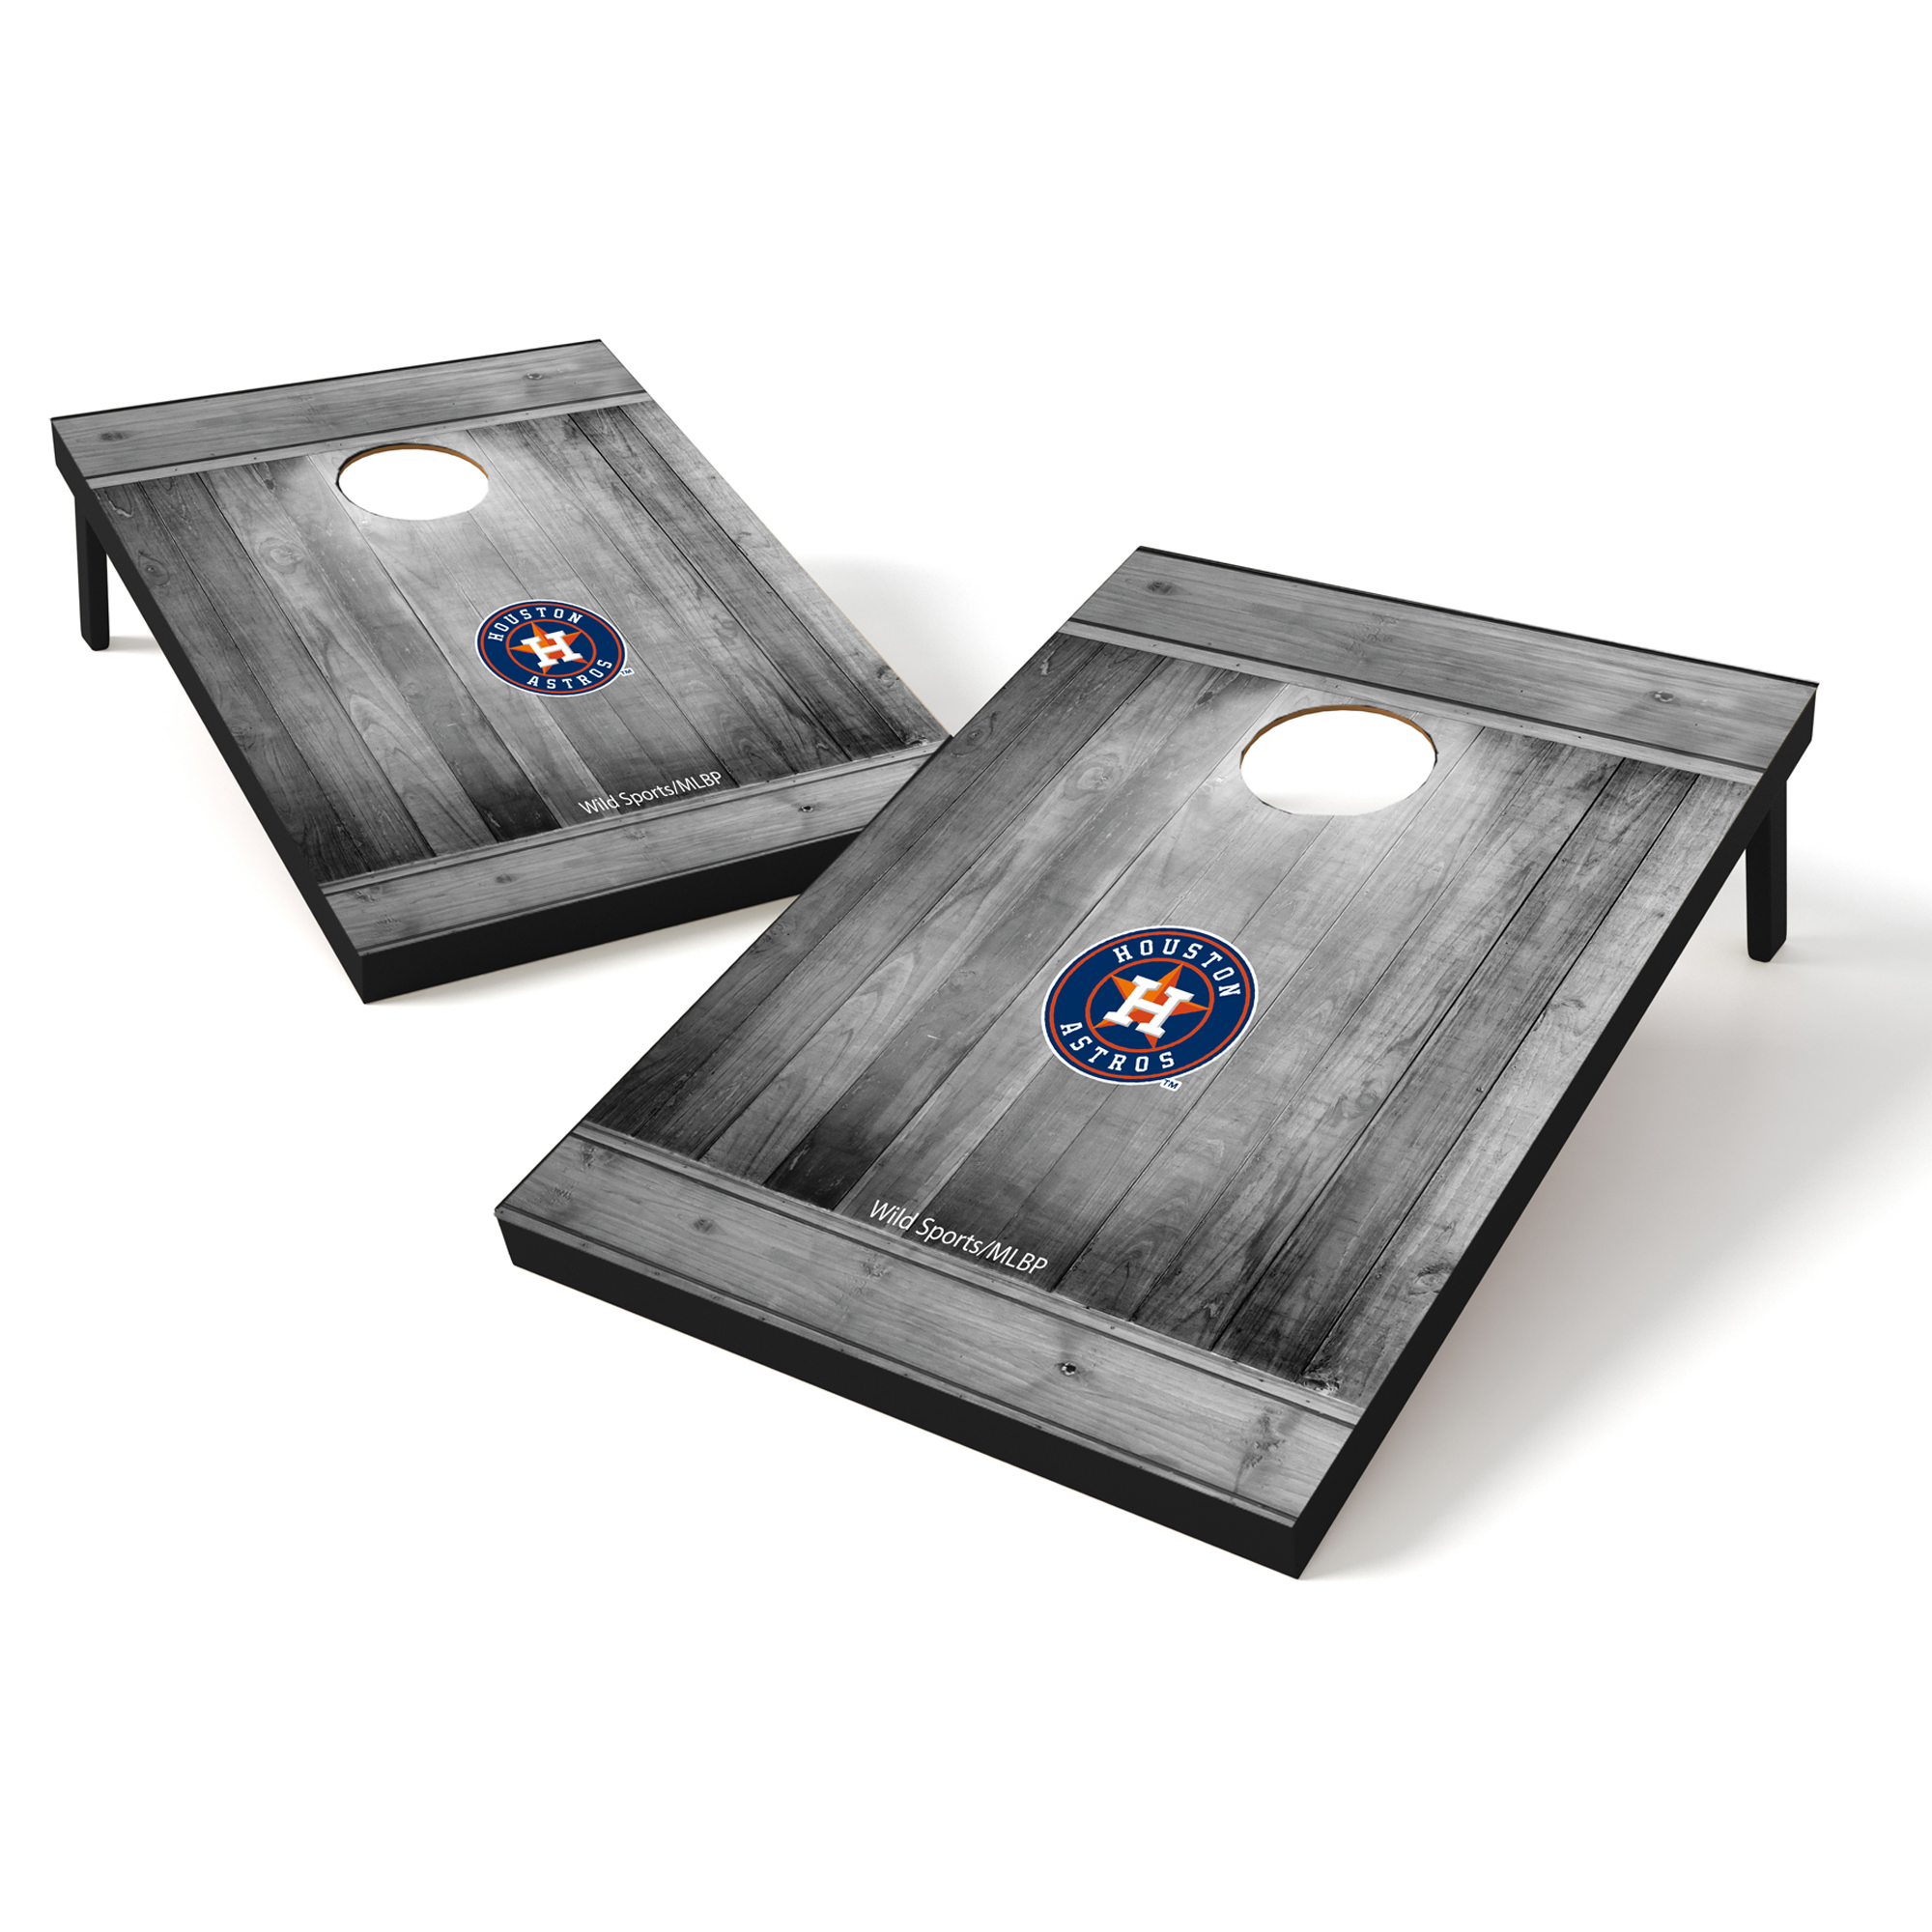 Tailgate Toss Wood MLB Houston Astros